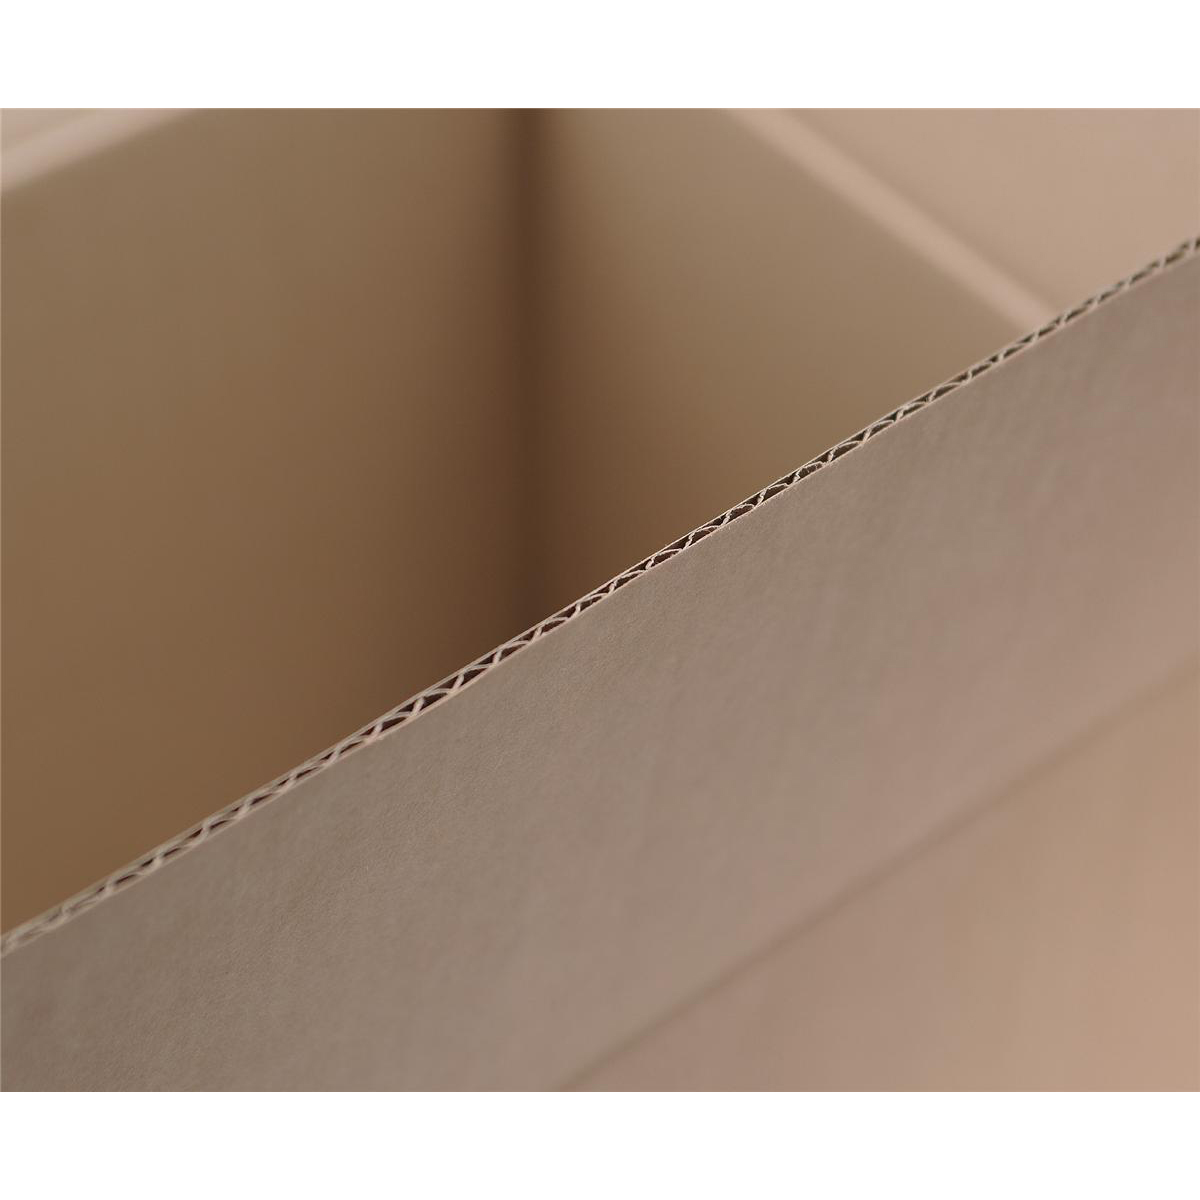 Packing Carton Single Wall Strong Flat Packed 203x203x203mm Brown [Pack 25]